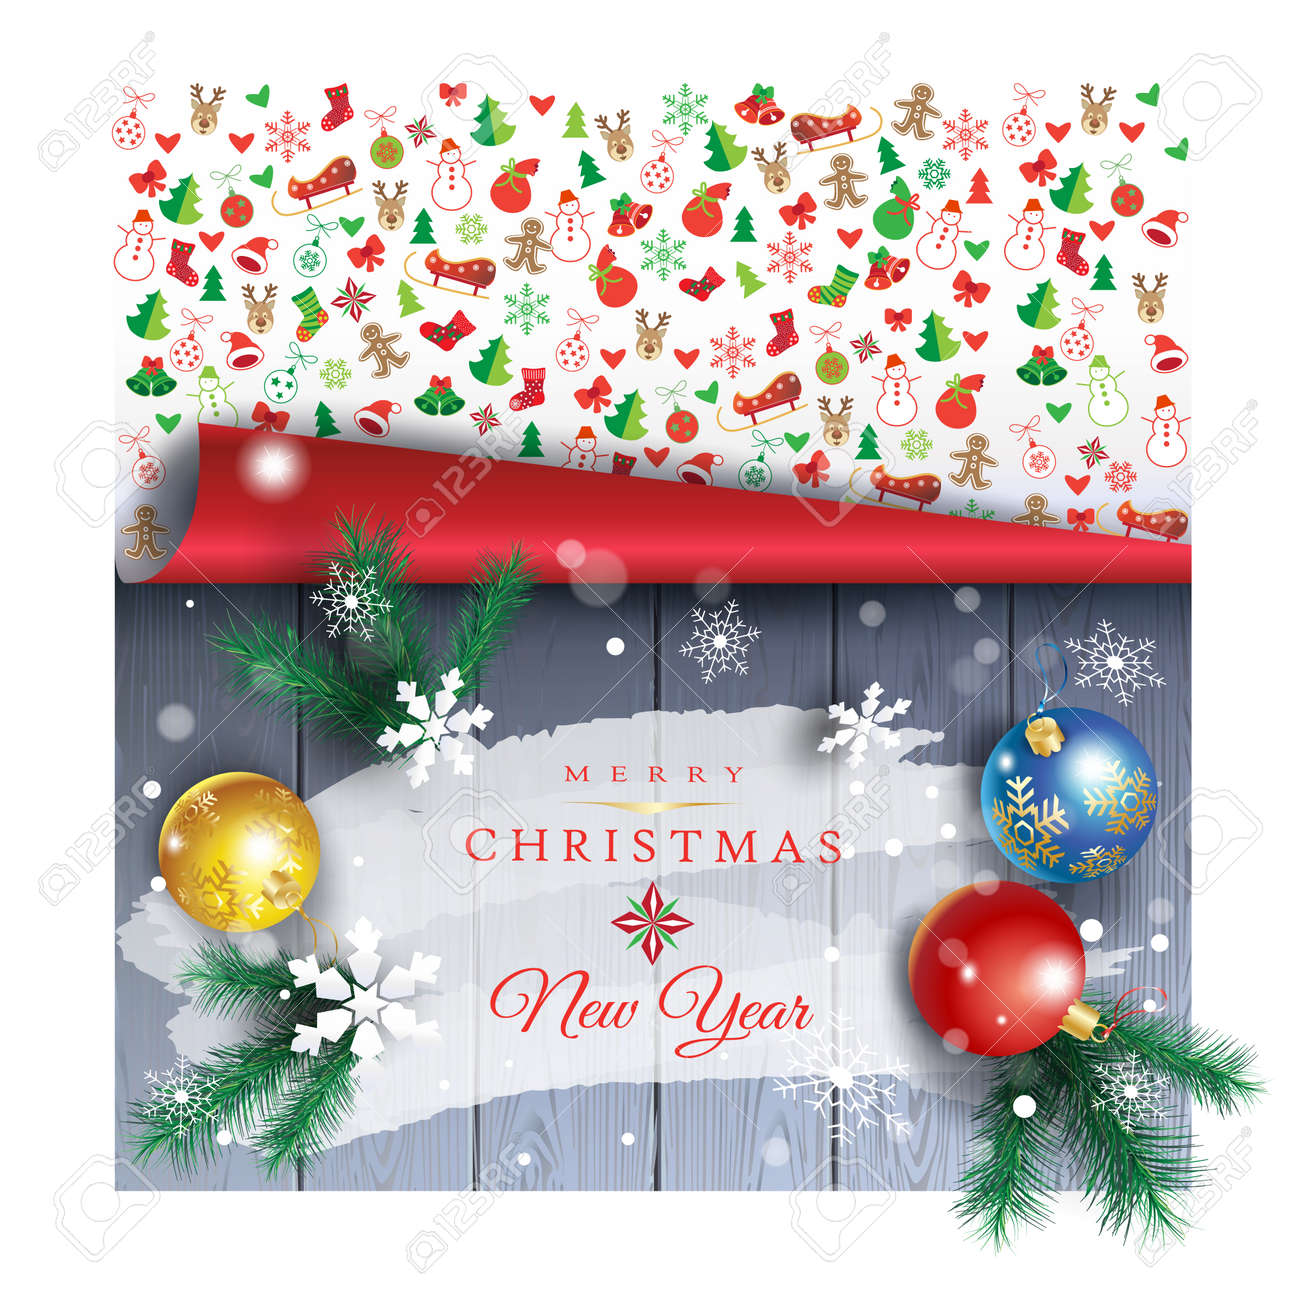 merry christmas and happy new year banner stock vector 92056005